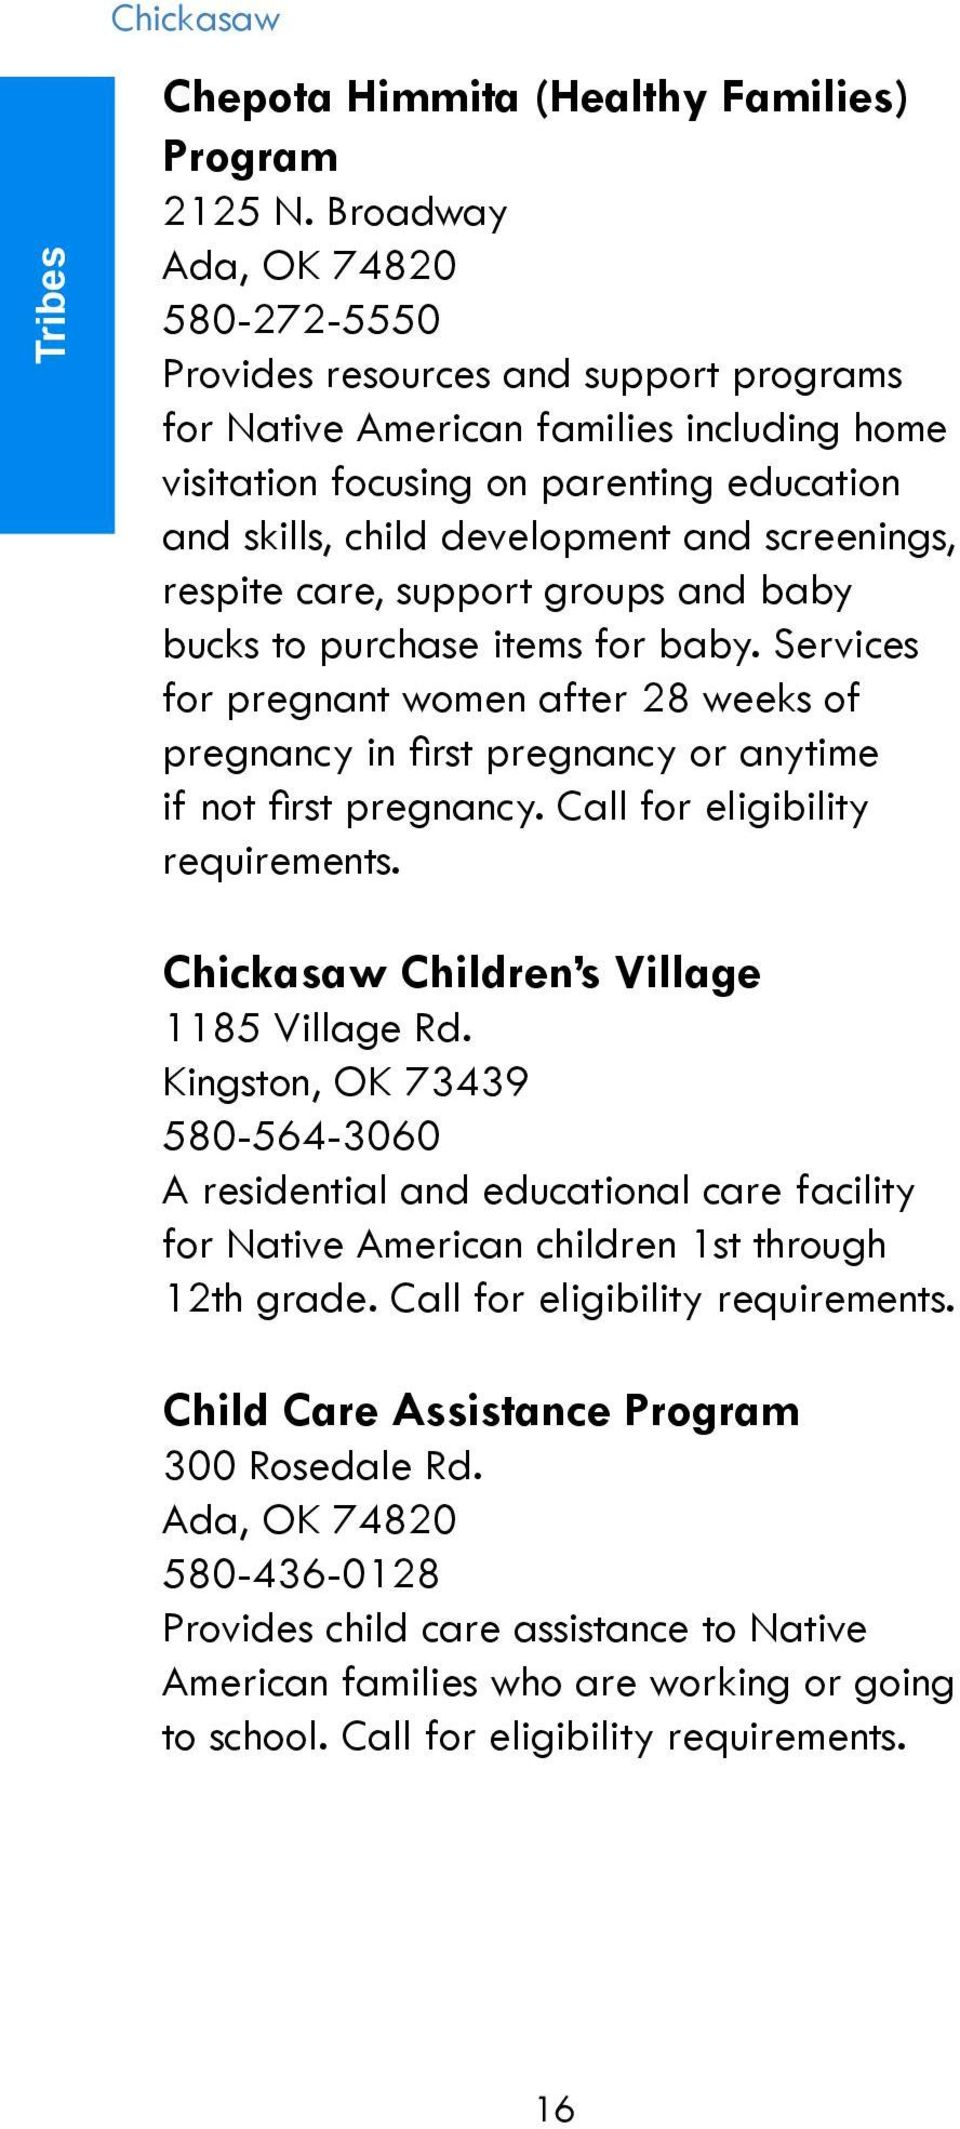 screenings, respite care, support groups and baby bucks to purchase items for baby. Services for pregnant women after 28 weeks of pregnancy in first pregnancy or anytime if not first pregnancy.